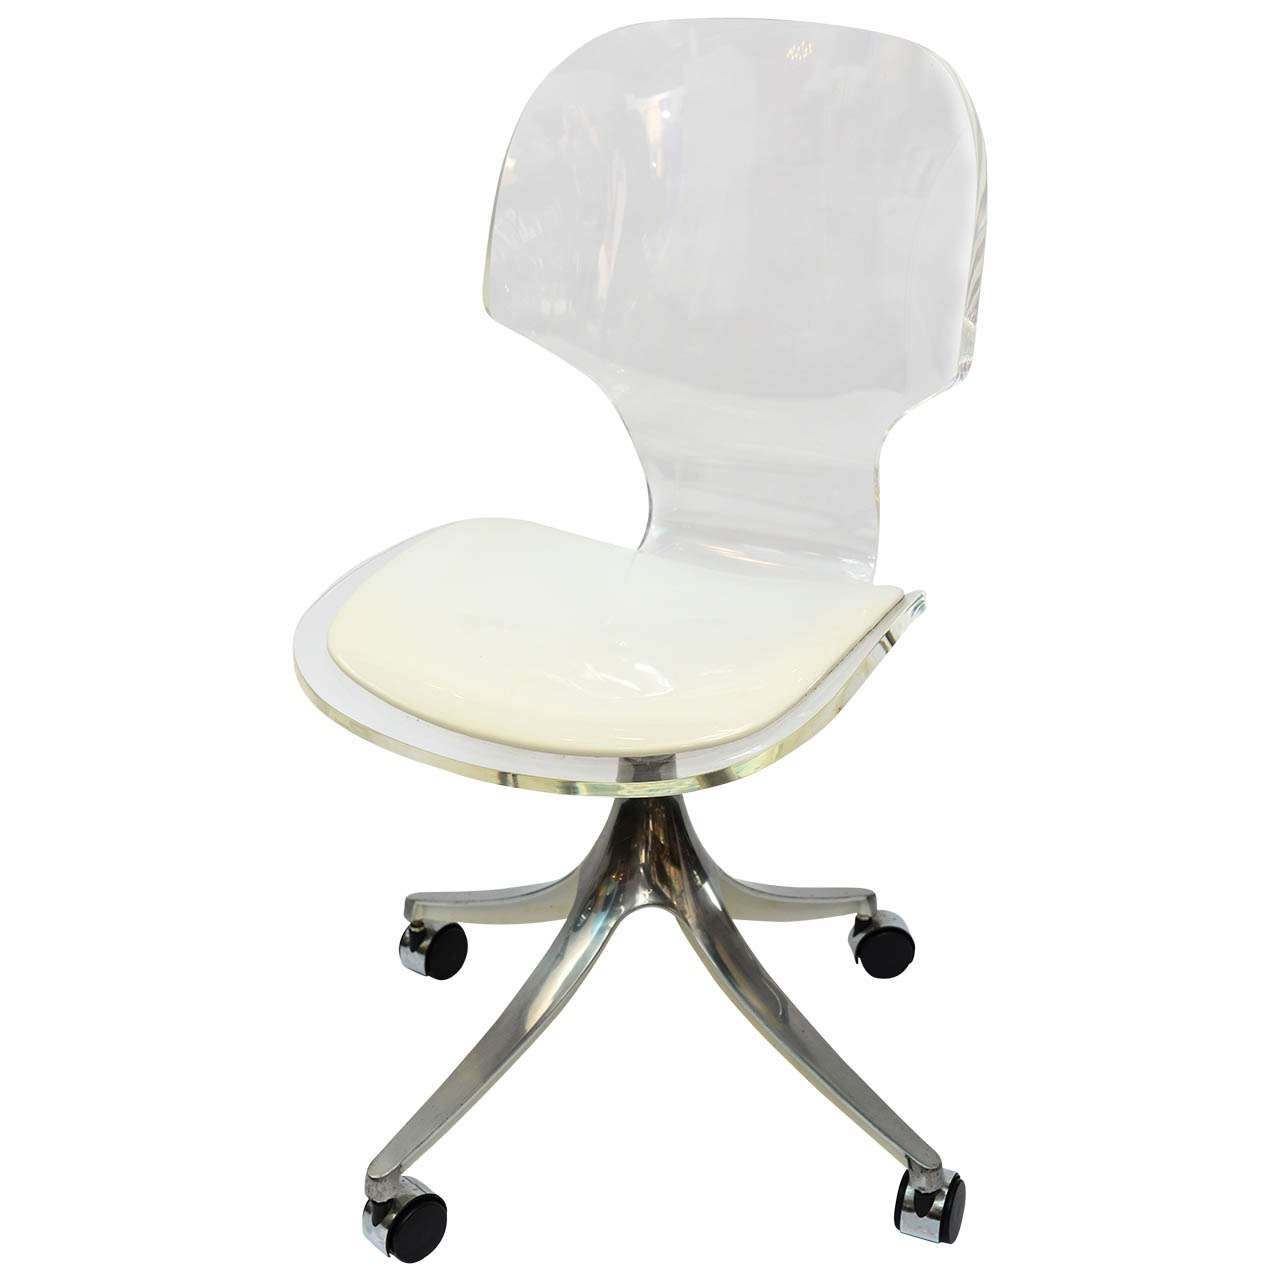 Lucite Vanity Chair Stunning 1960 39s Lucite Desk Chair On Chrome Swivel Base At